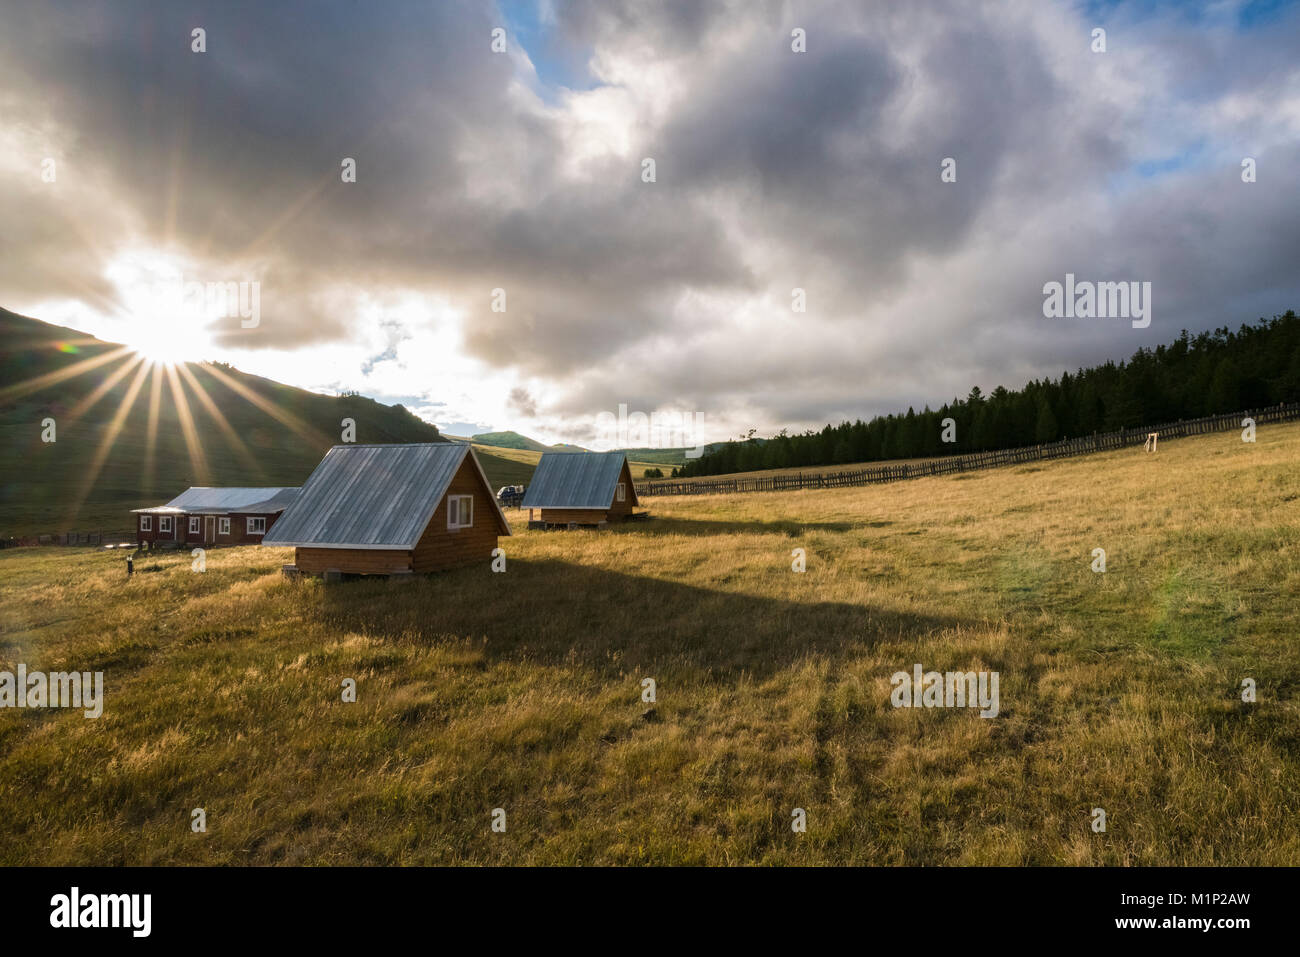 Wooden houses at sunrise, Burentogtokh district, Hovsgol province, Mongolia, Central Asia, Asia - Stock Image